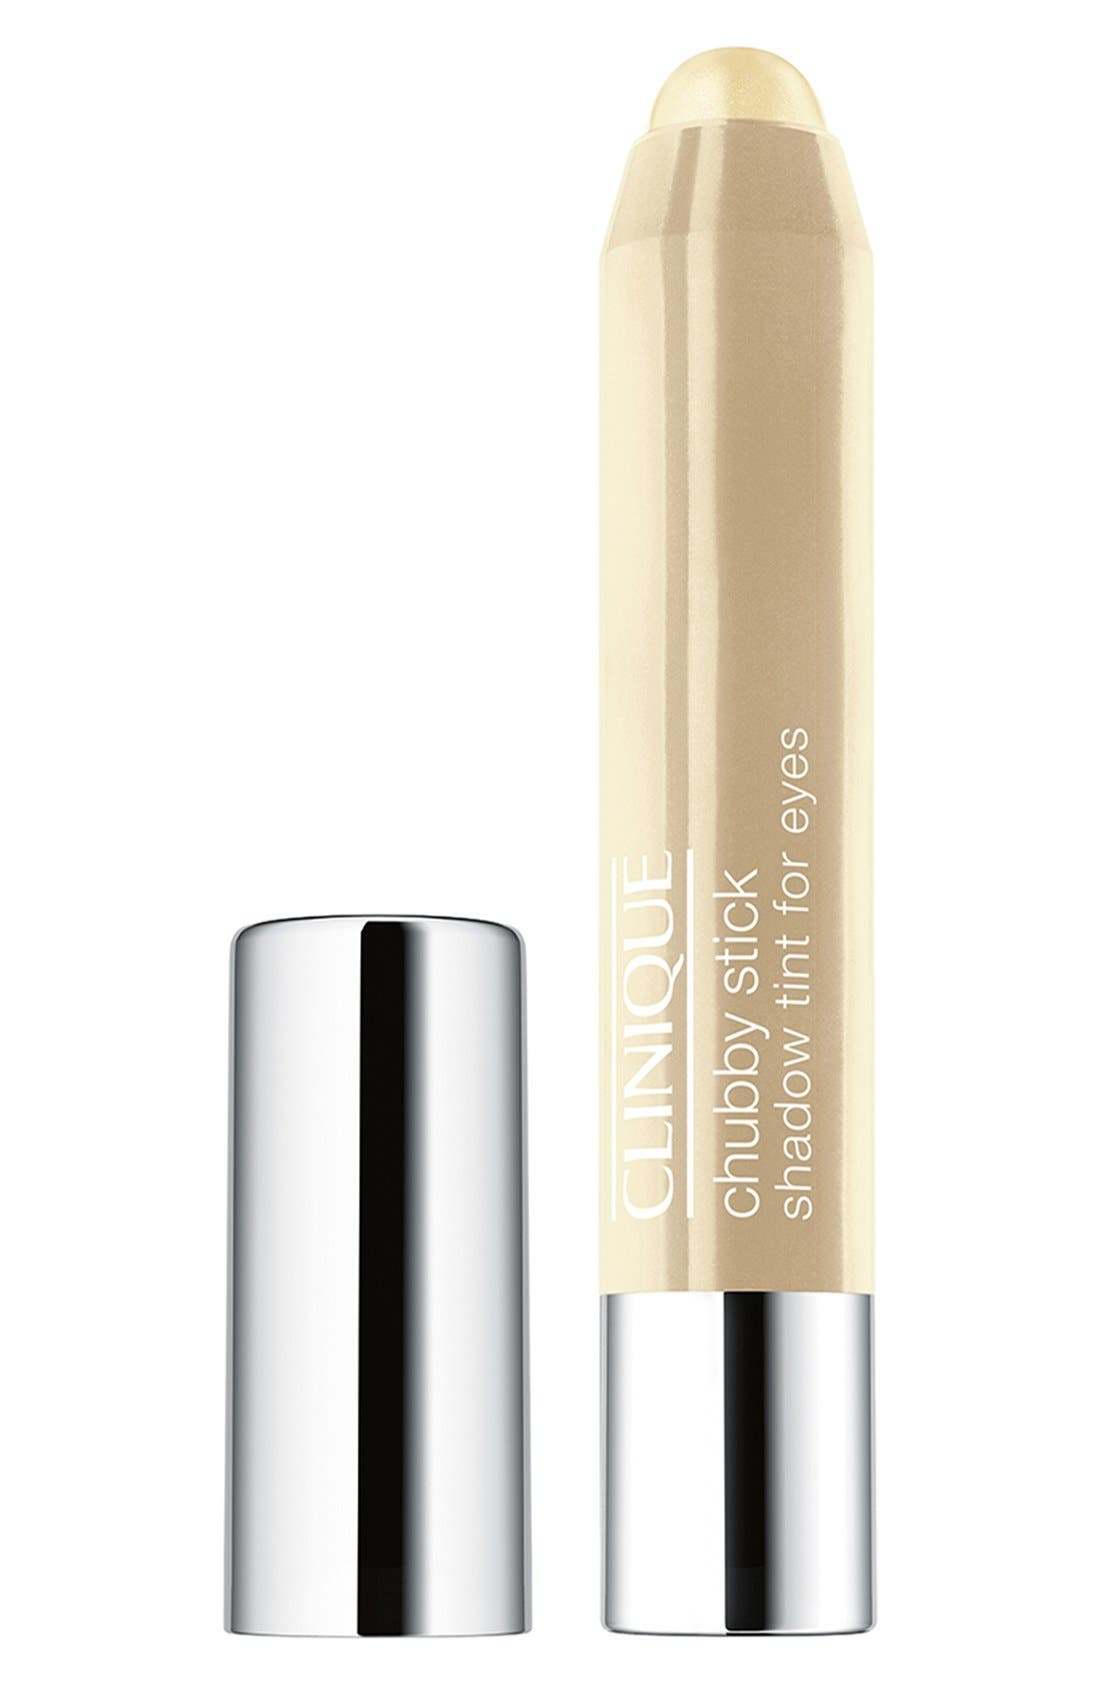 Clinique Chubby Stick Shadow Tint for Eyes